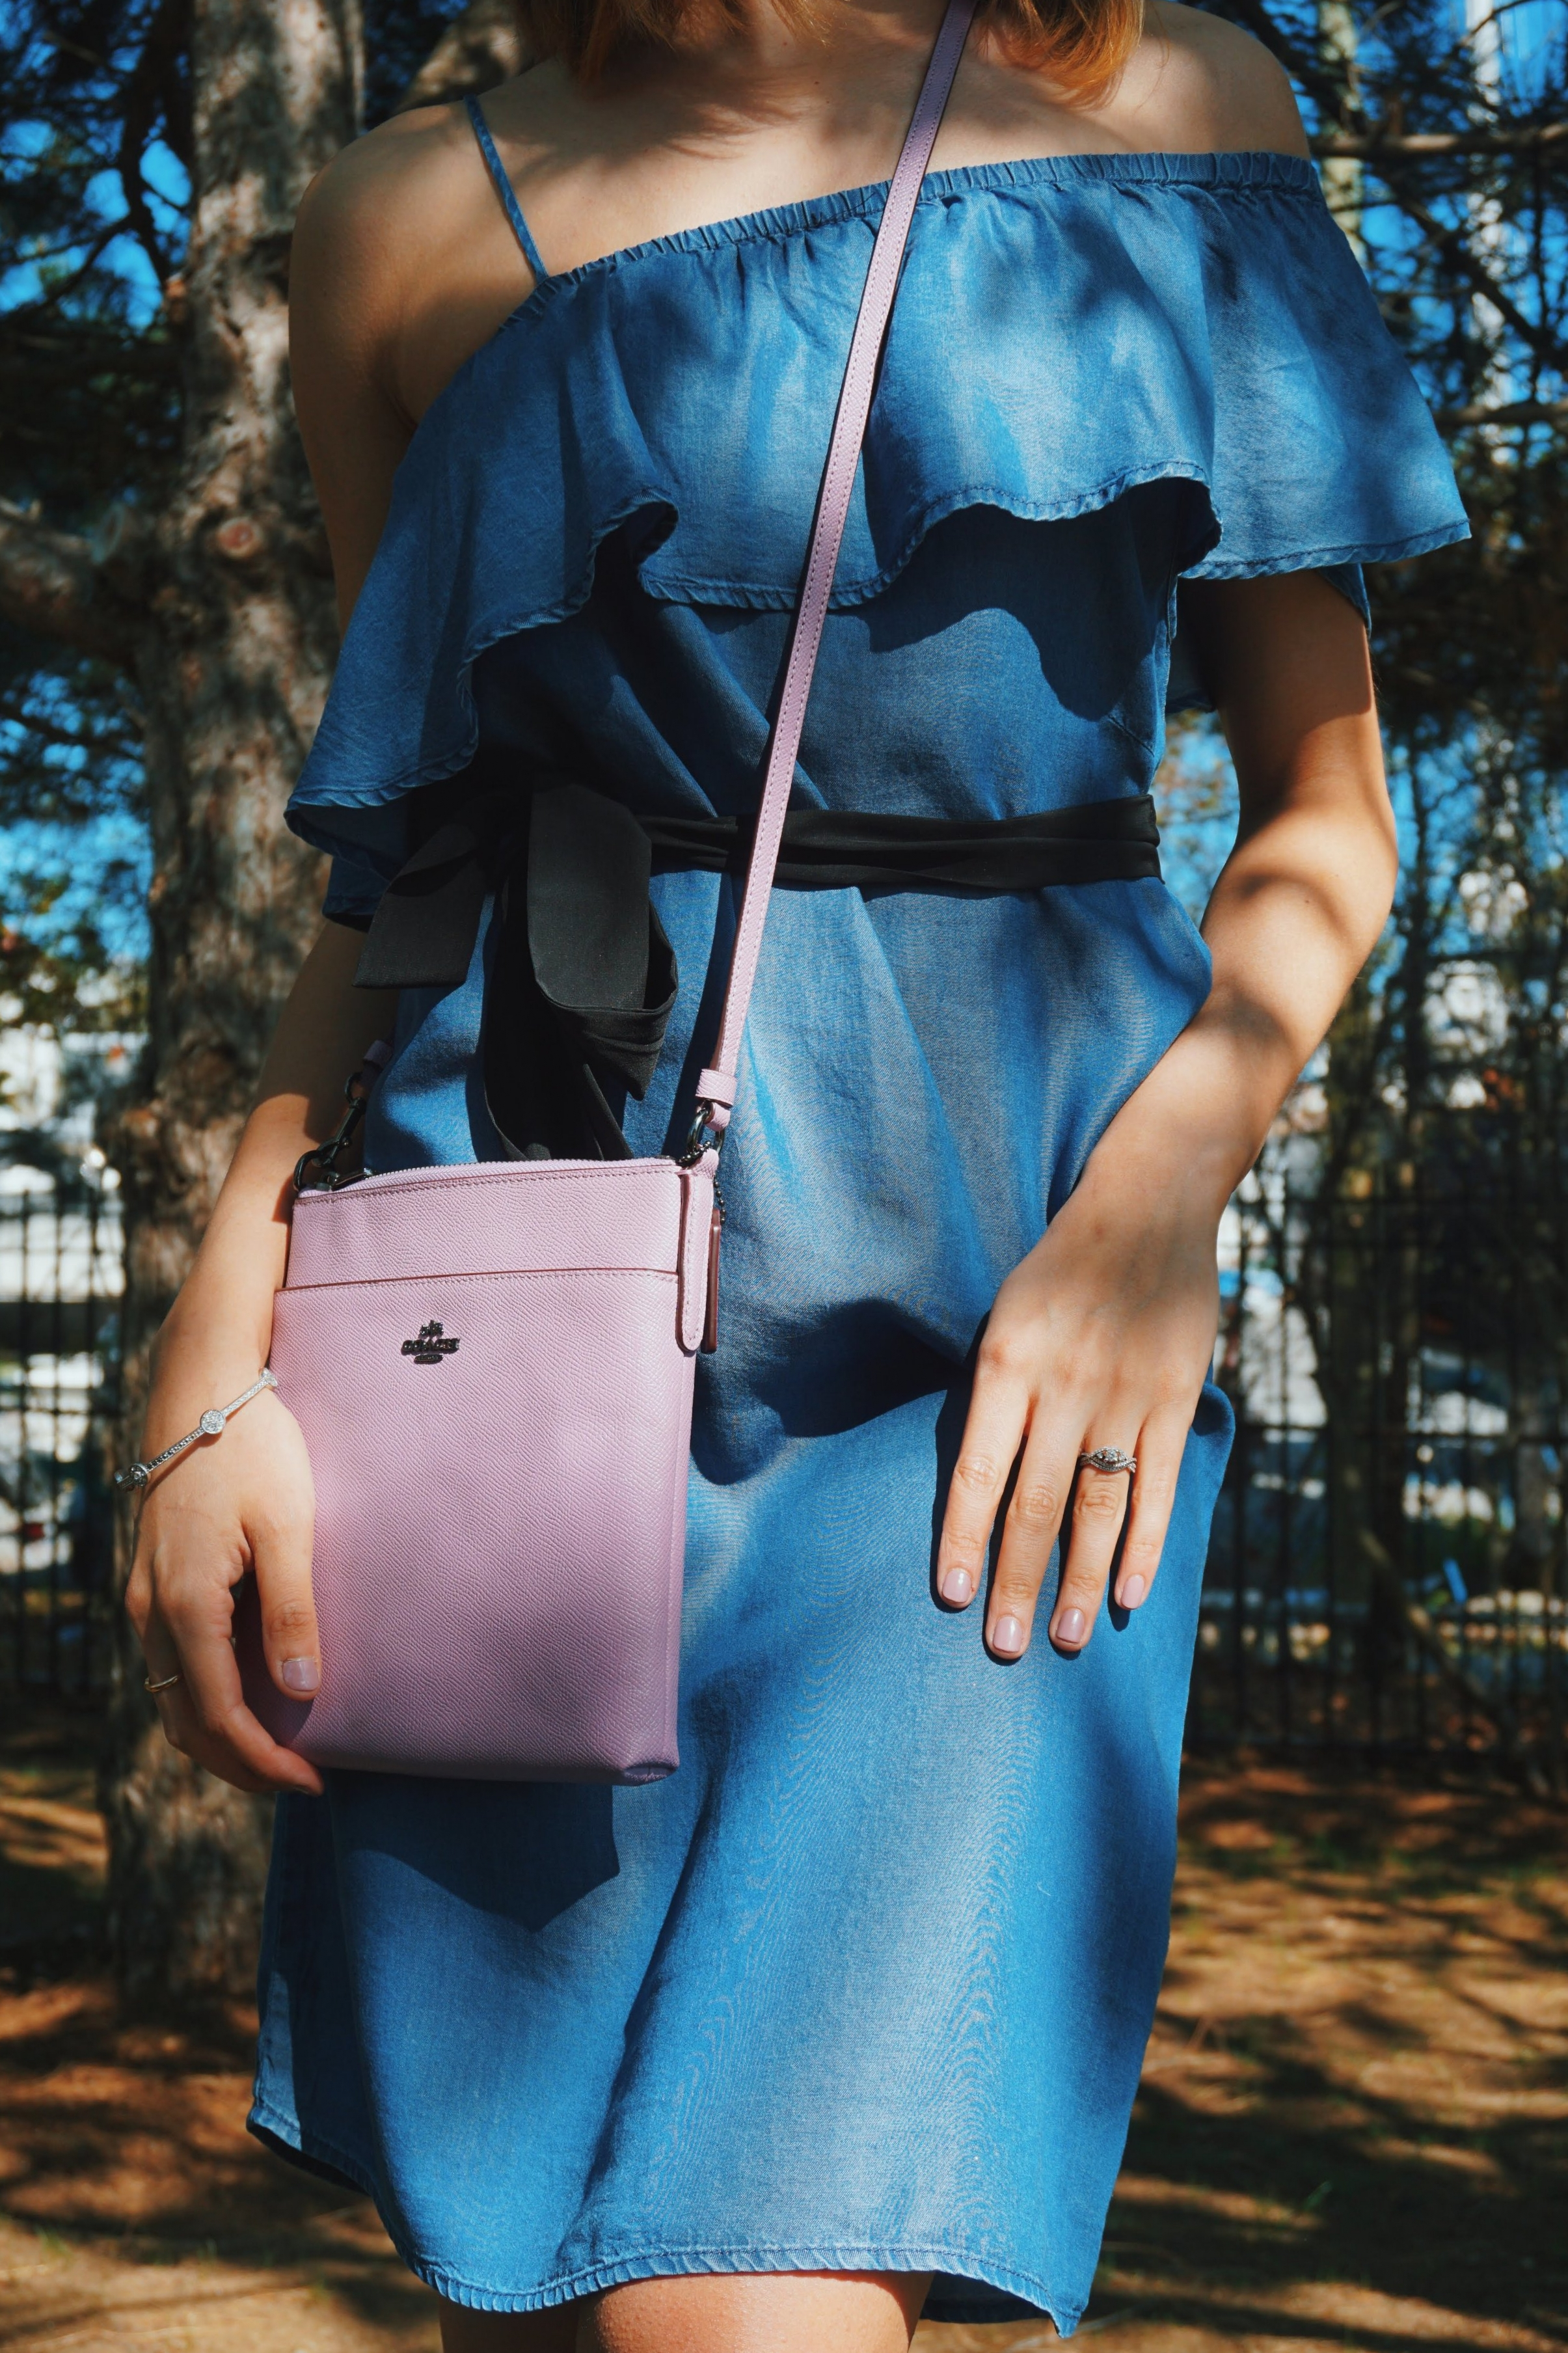 Detail shot of a summer outfit: blue denim off-the-shoulder dress, black tie on the waist, ruffles on the top, and a lilac Coach bag.